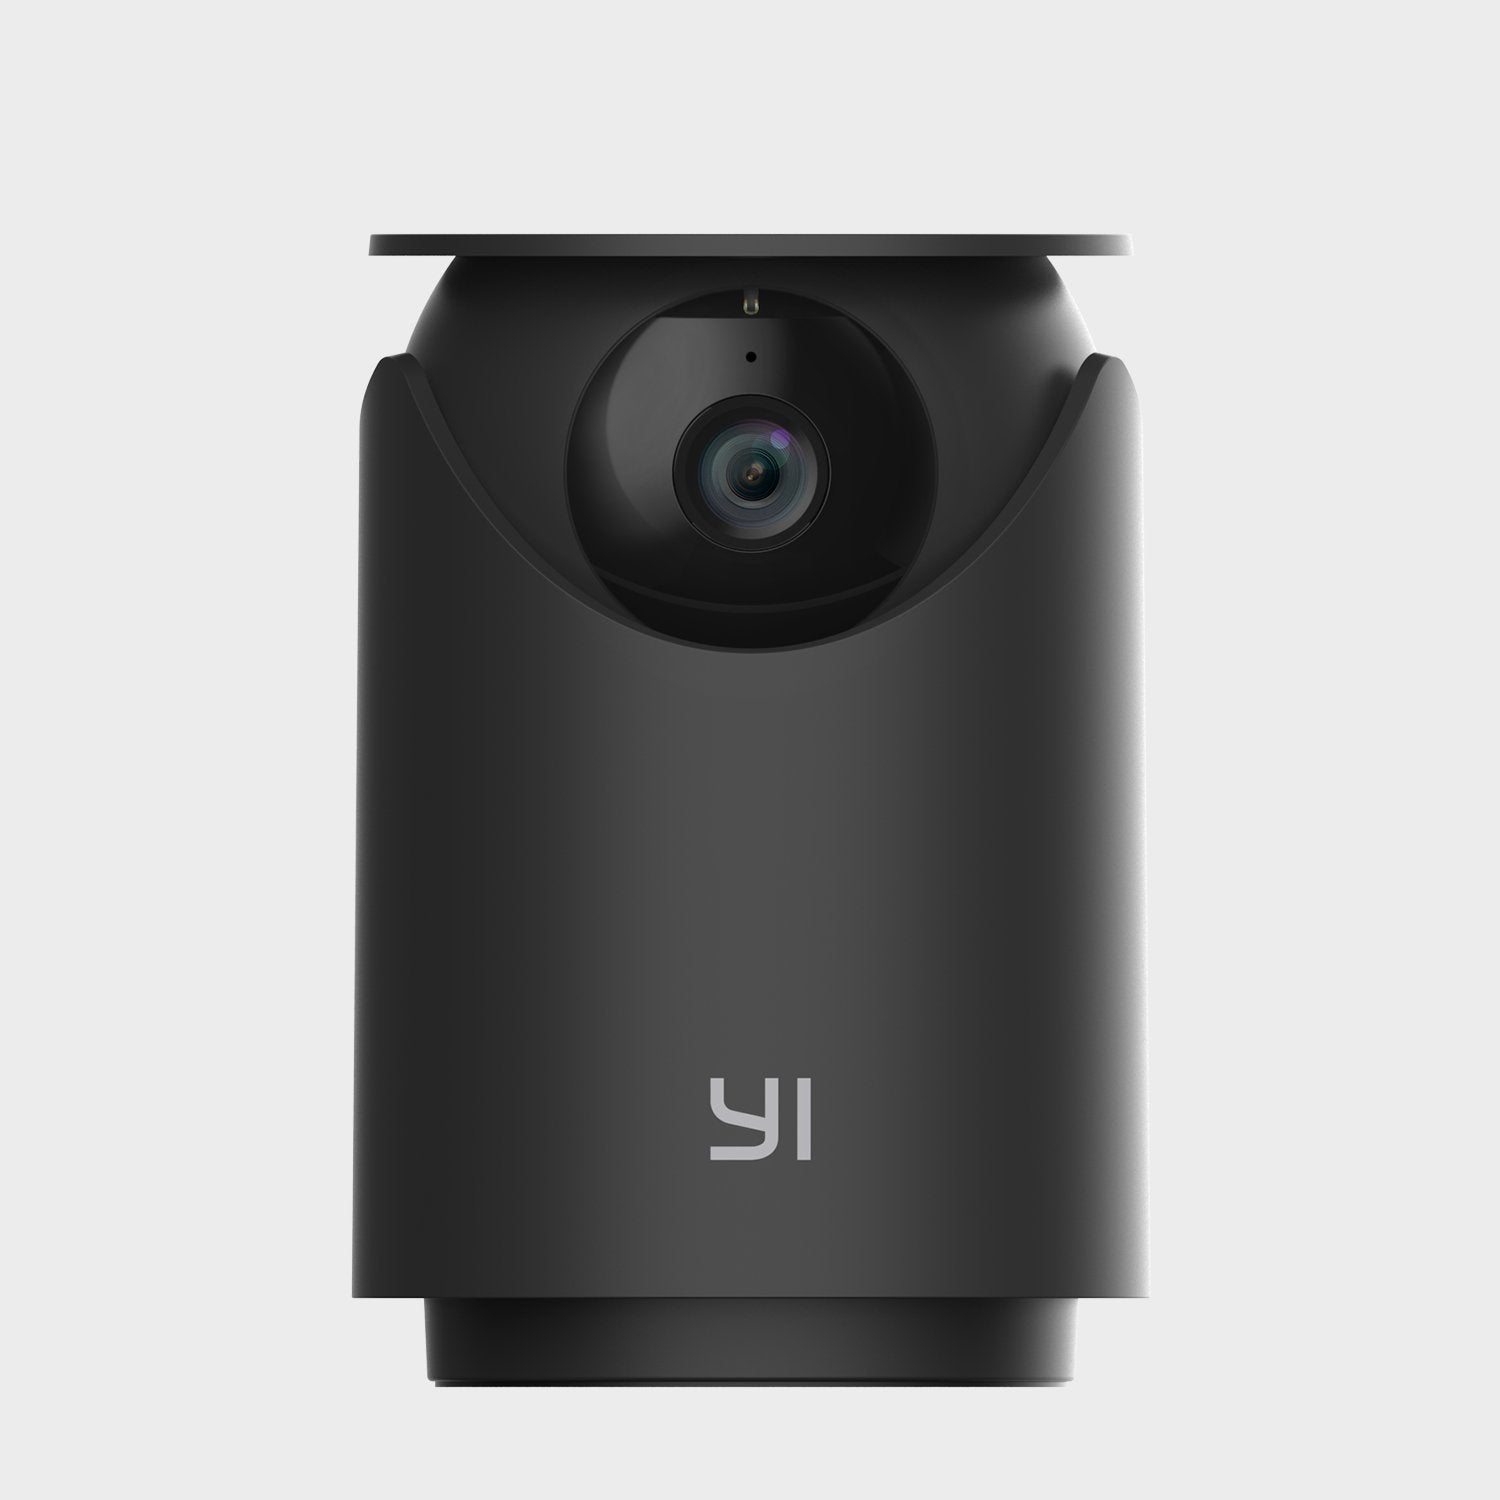 YI Dome U Pro 2K Security Camera